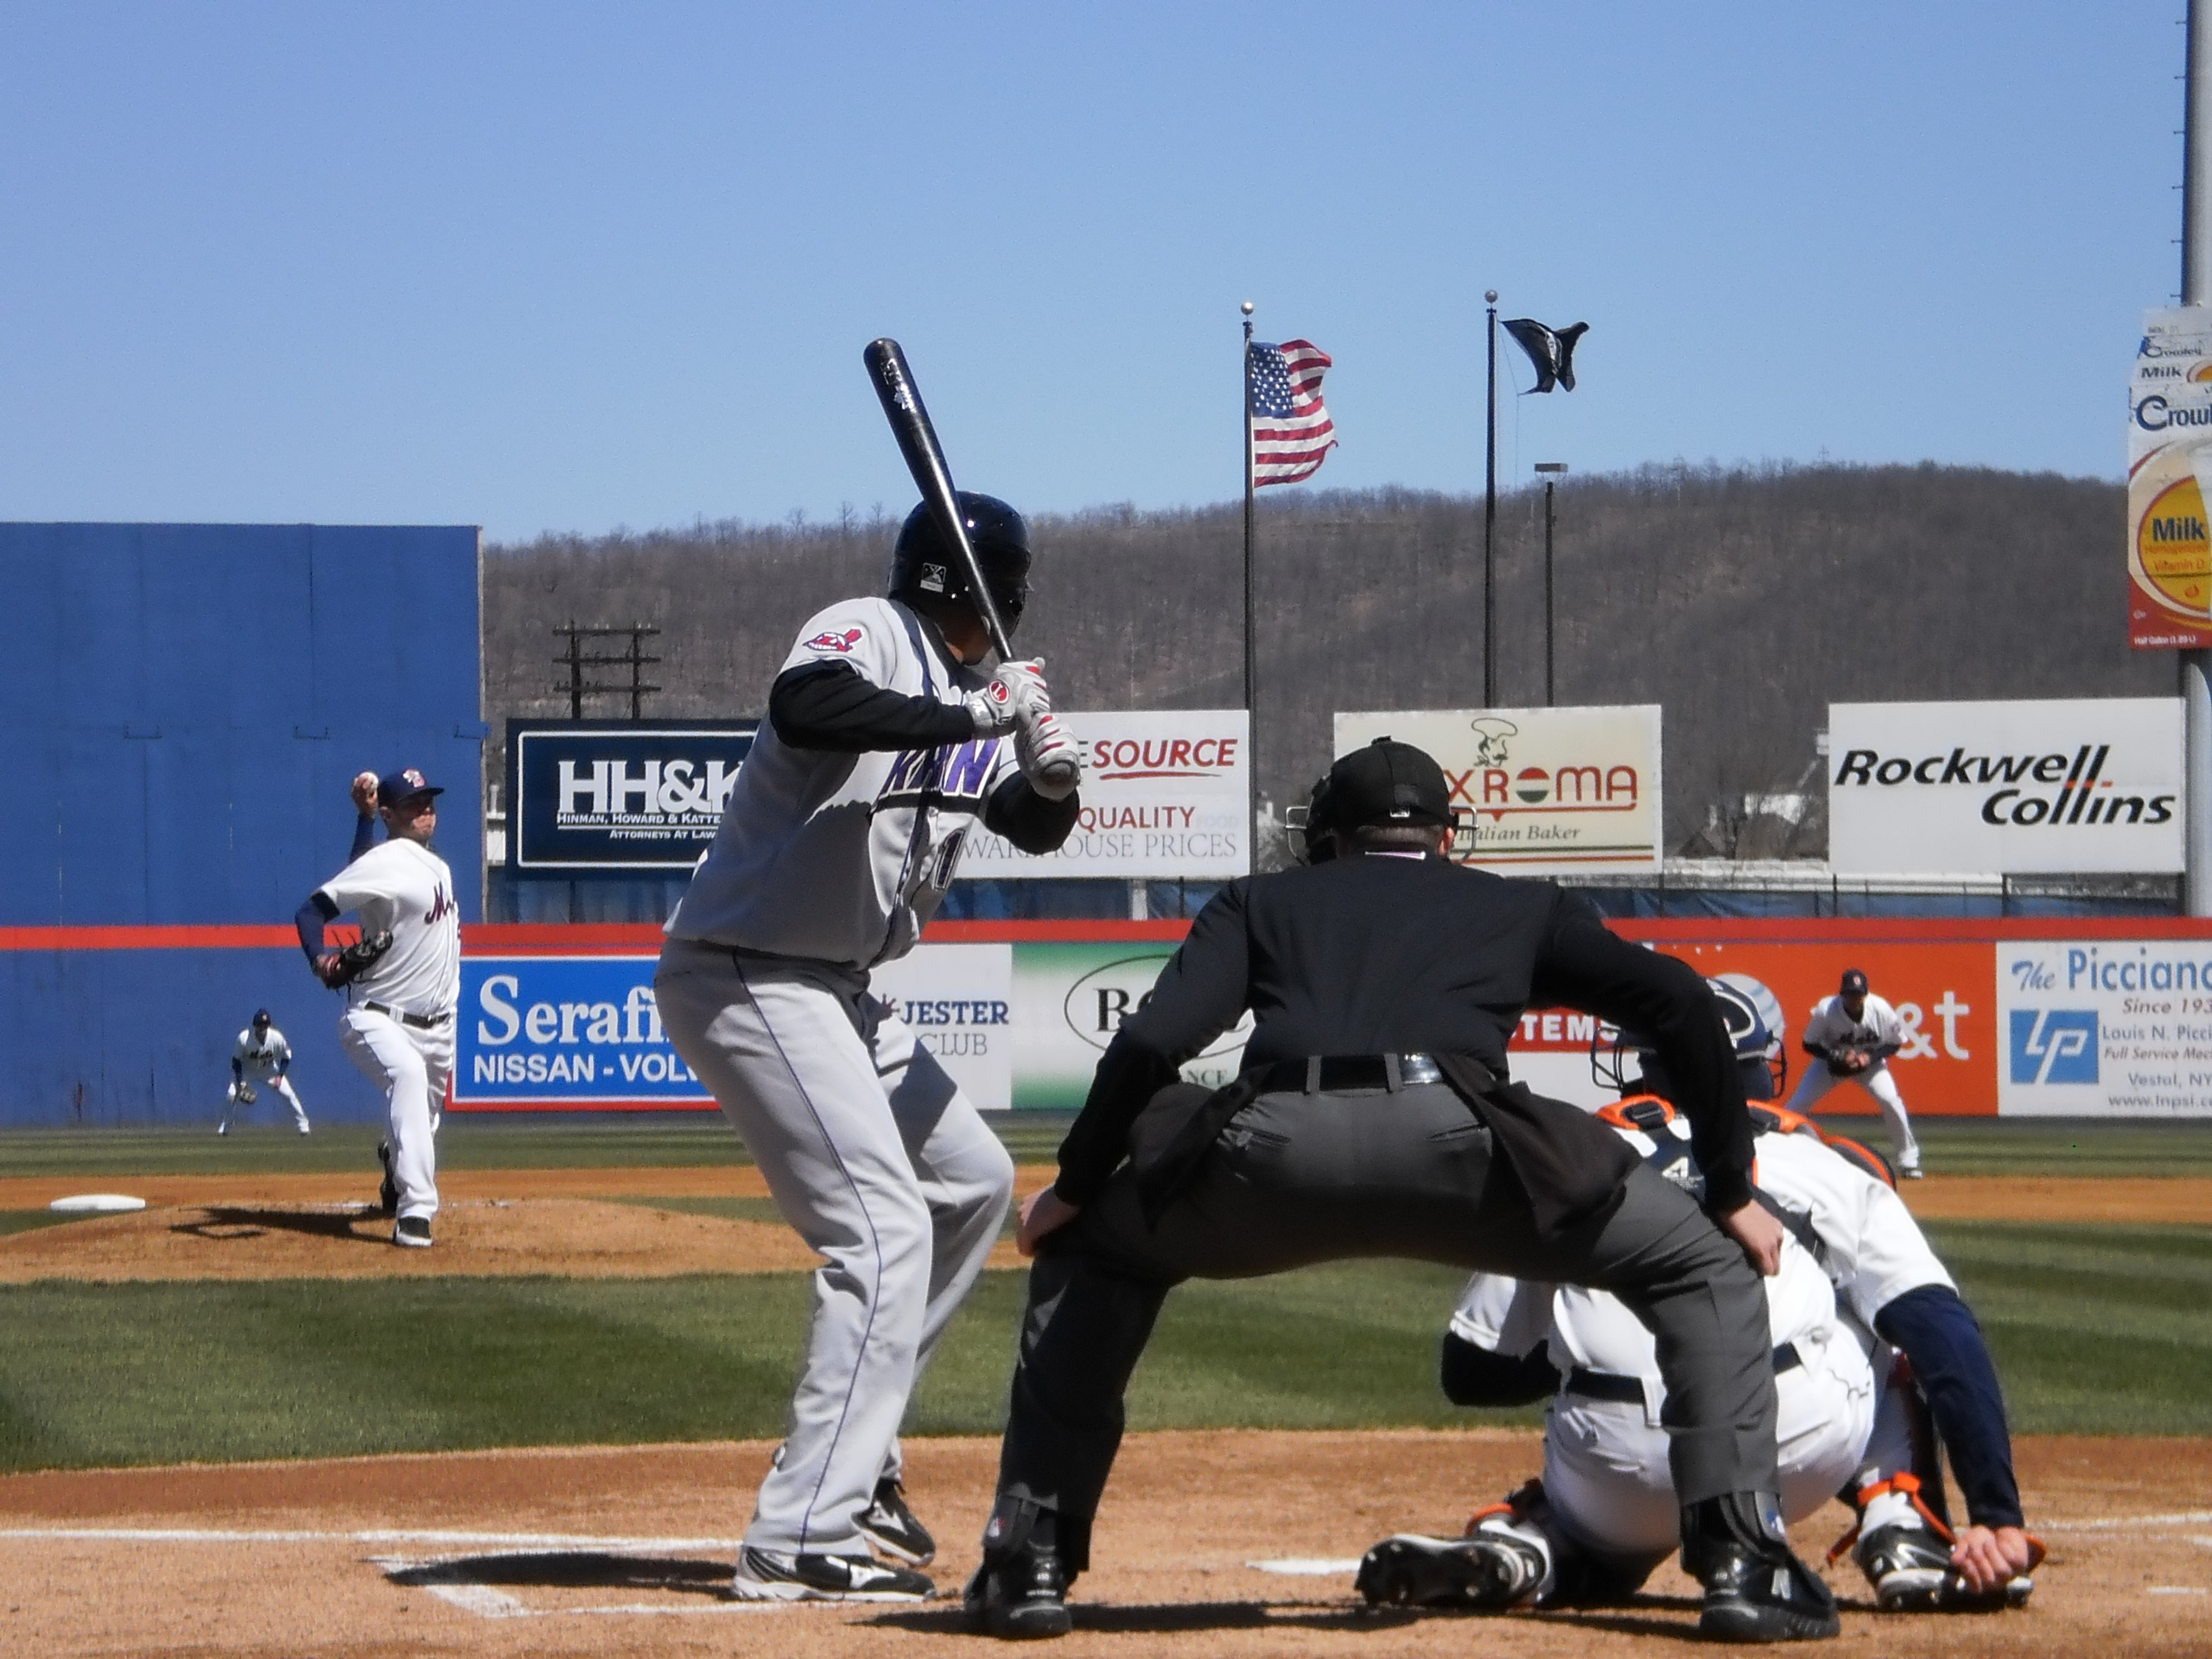 On The Road With Petey Pete: The Binghamton Mets